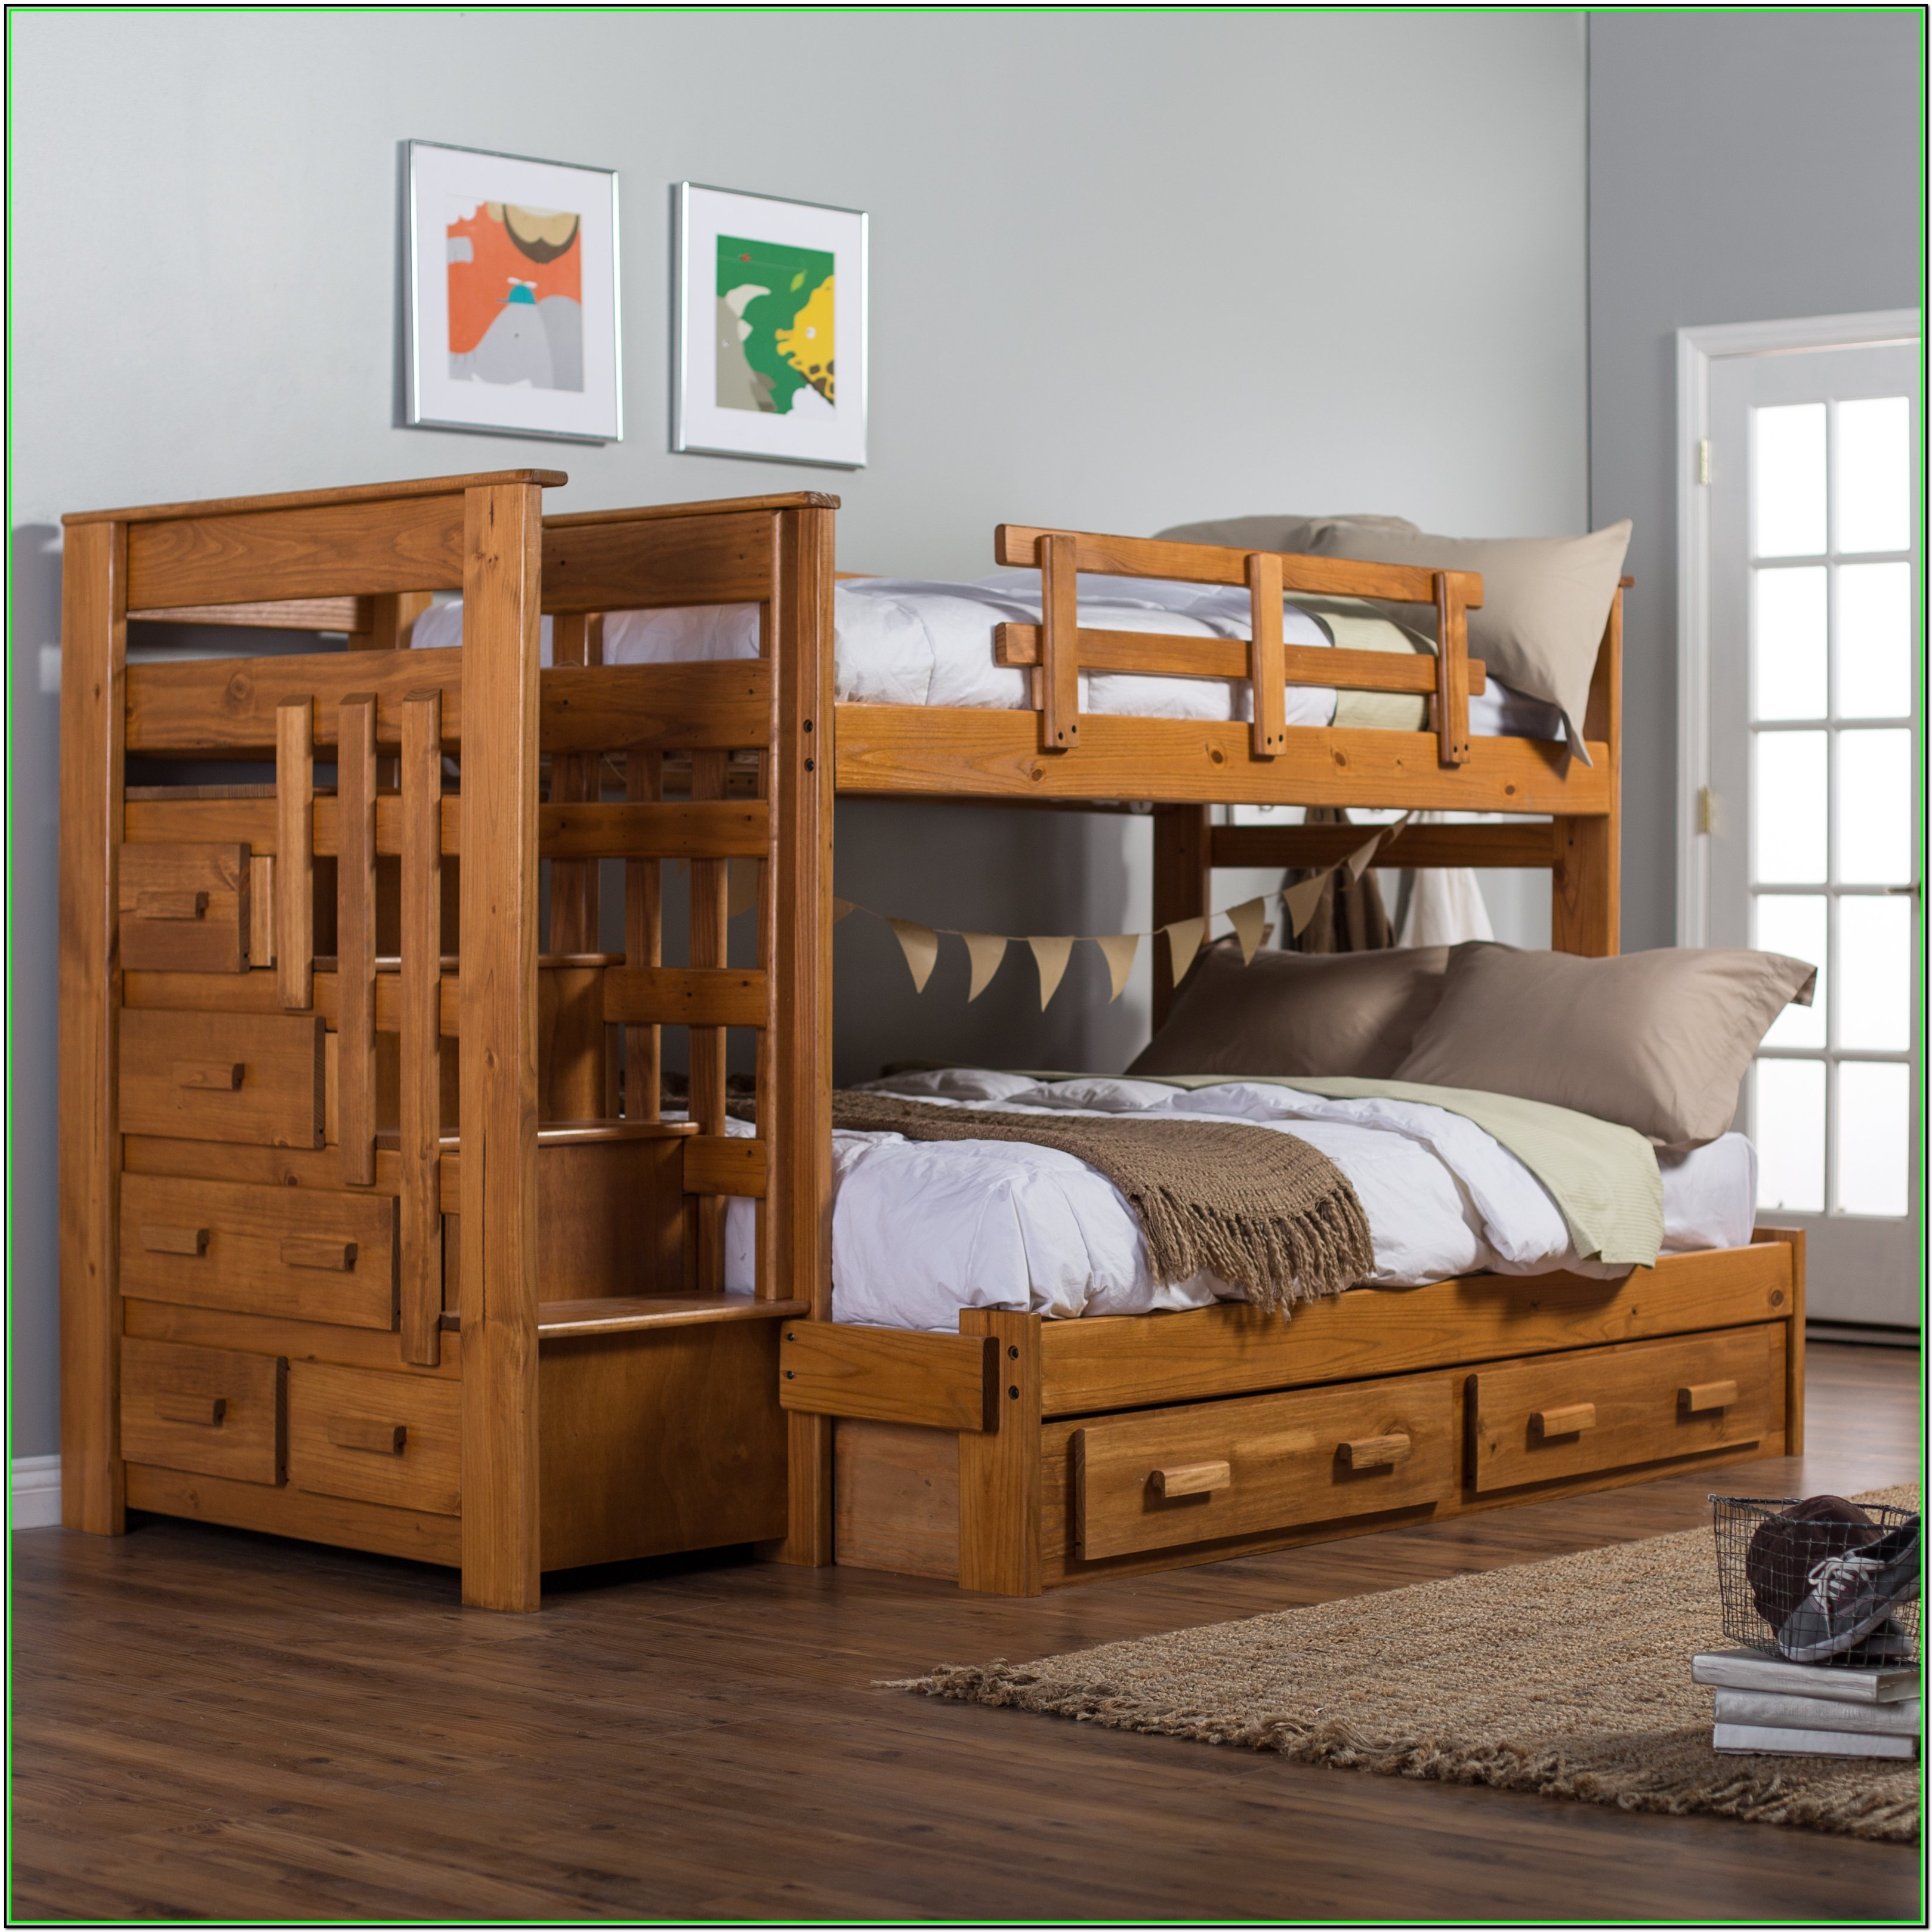 Bunk Bed Full Over Full With Stairs